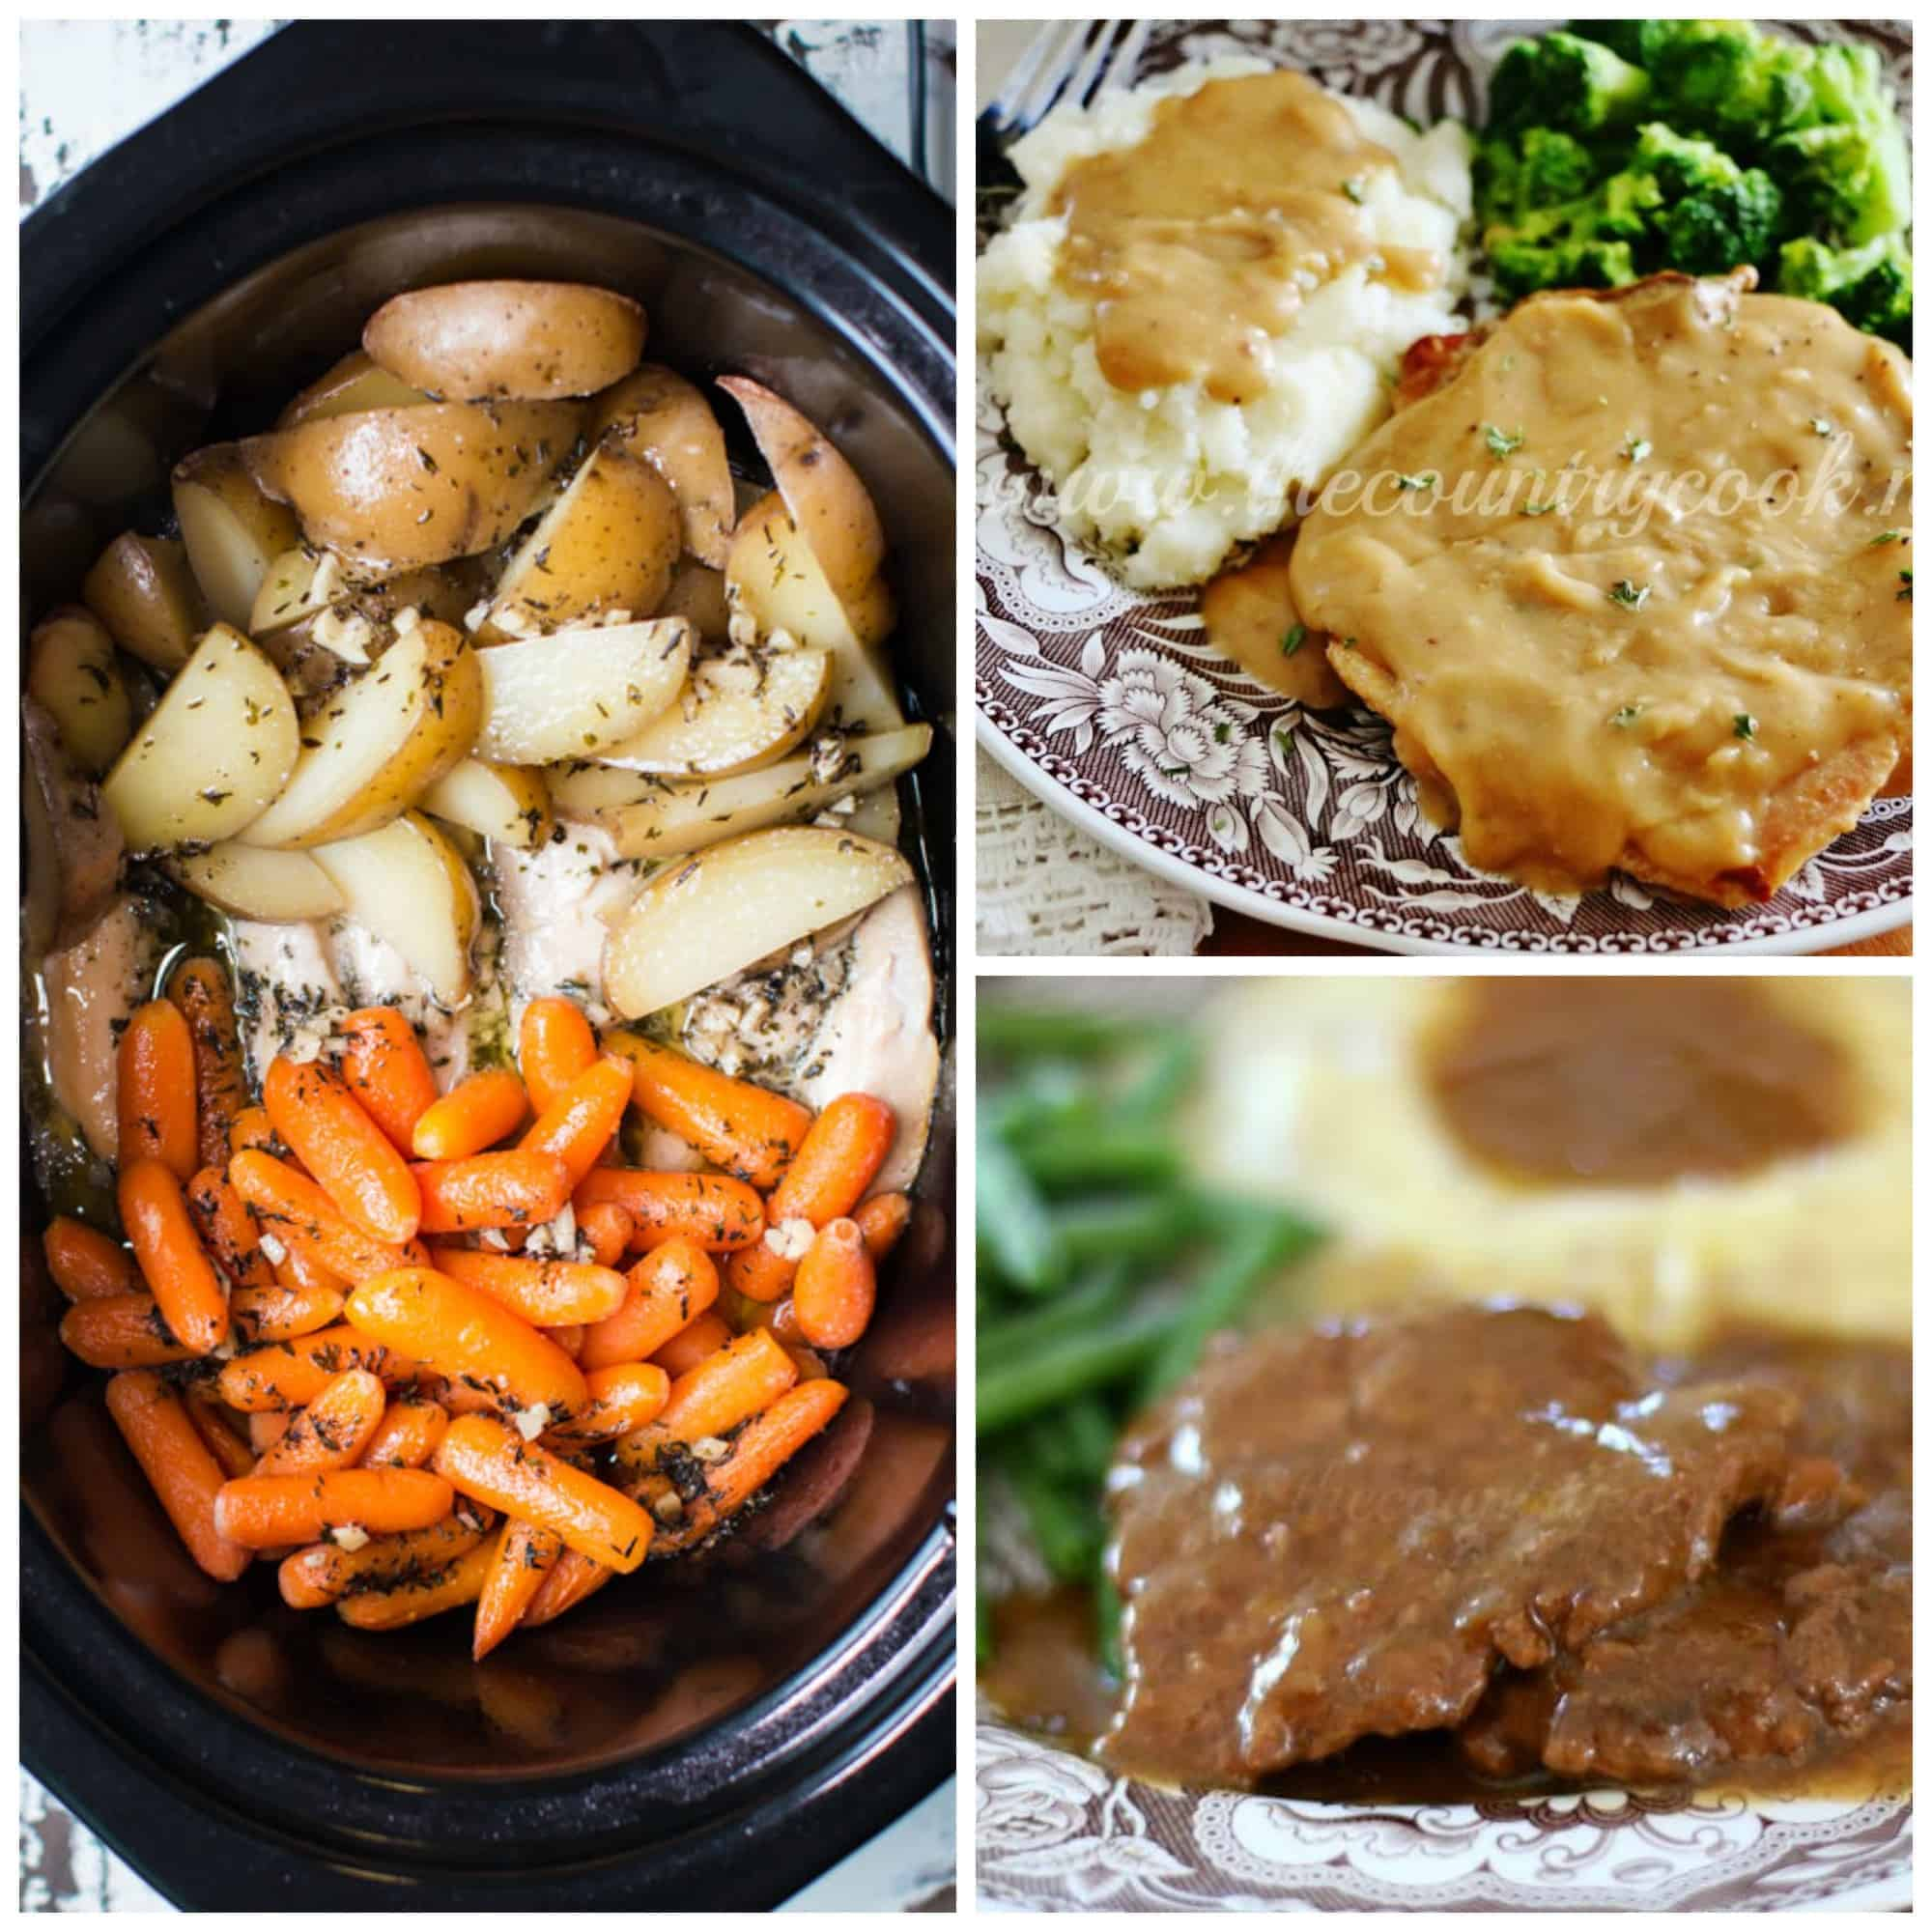 15 Easy Slow Cooker Dinner Recipes That Will Warm You Up